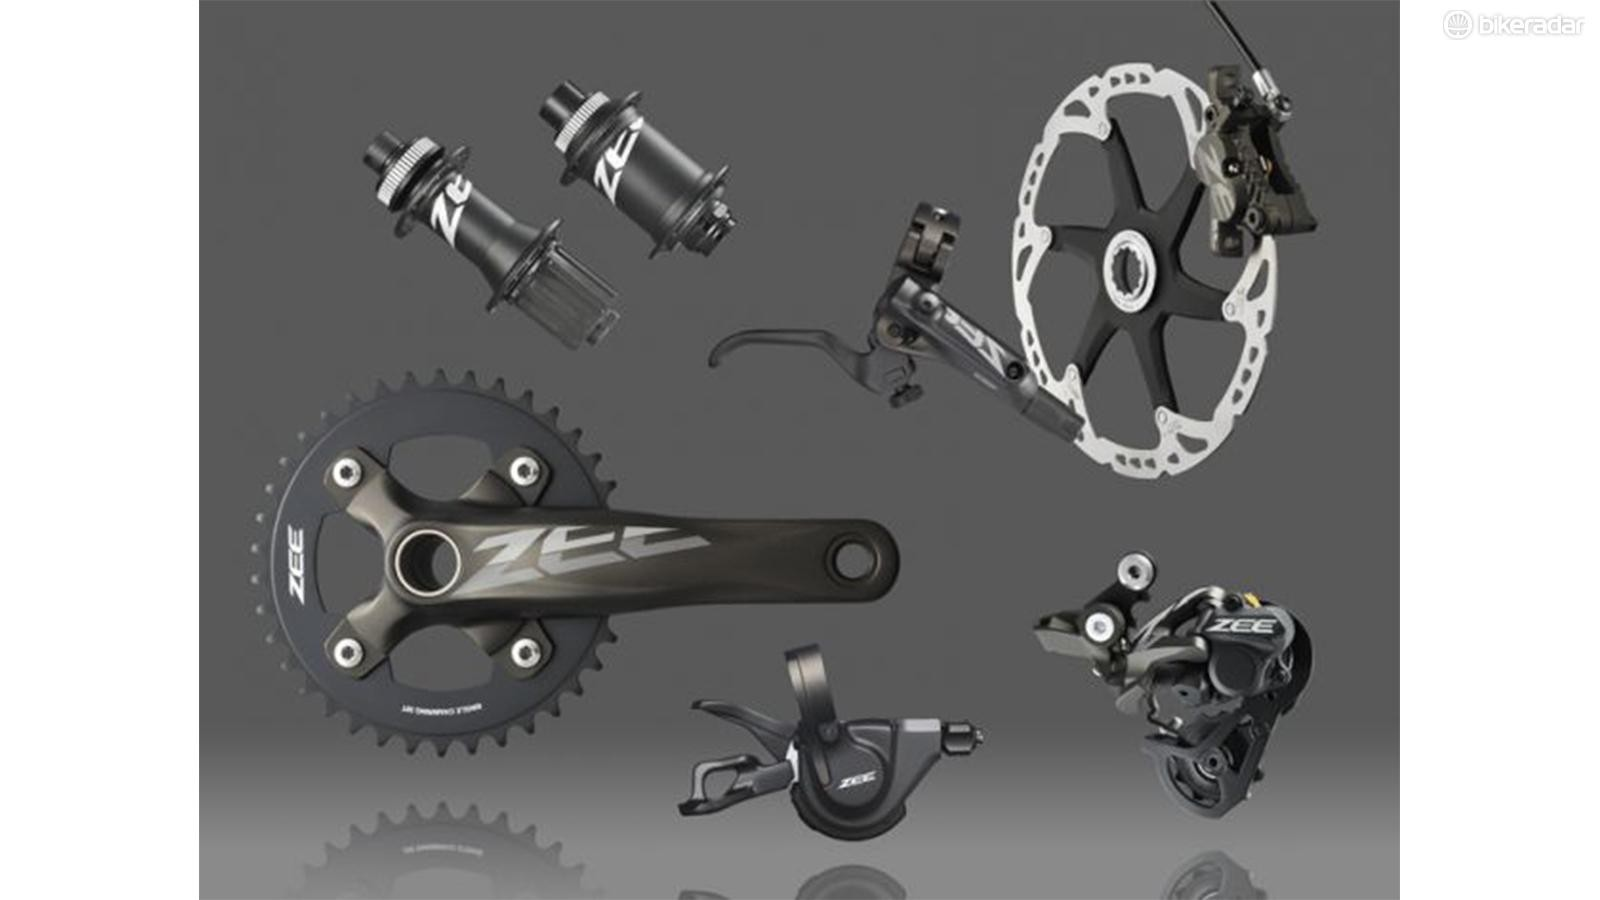 Zee is Shimano's entry-level group for downhill and freeride